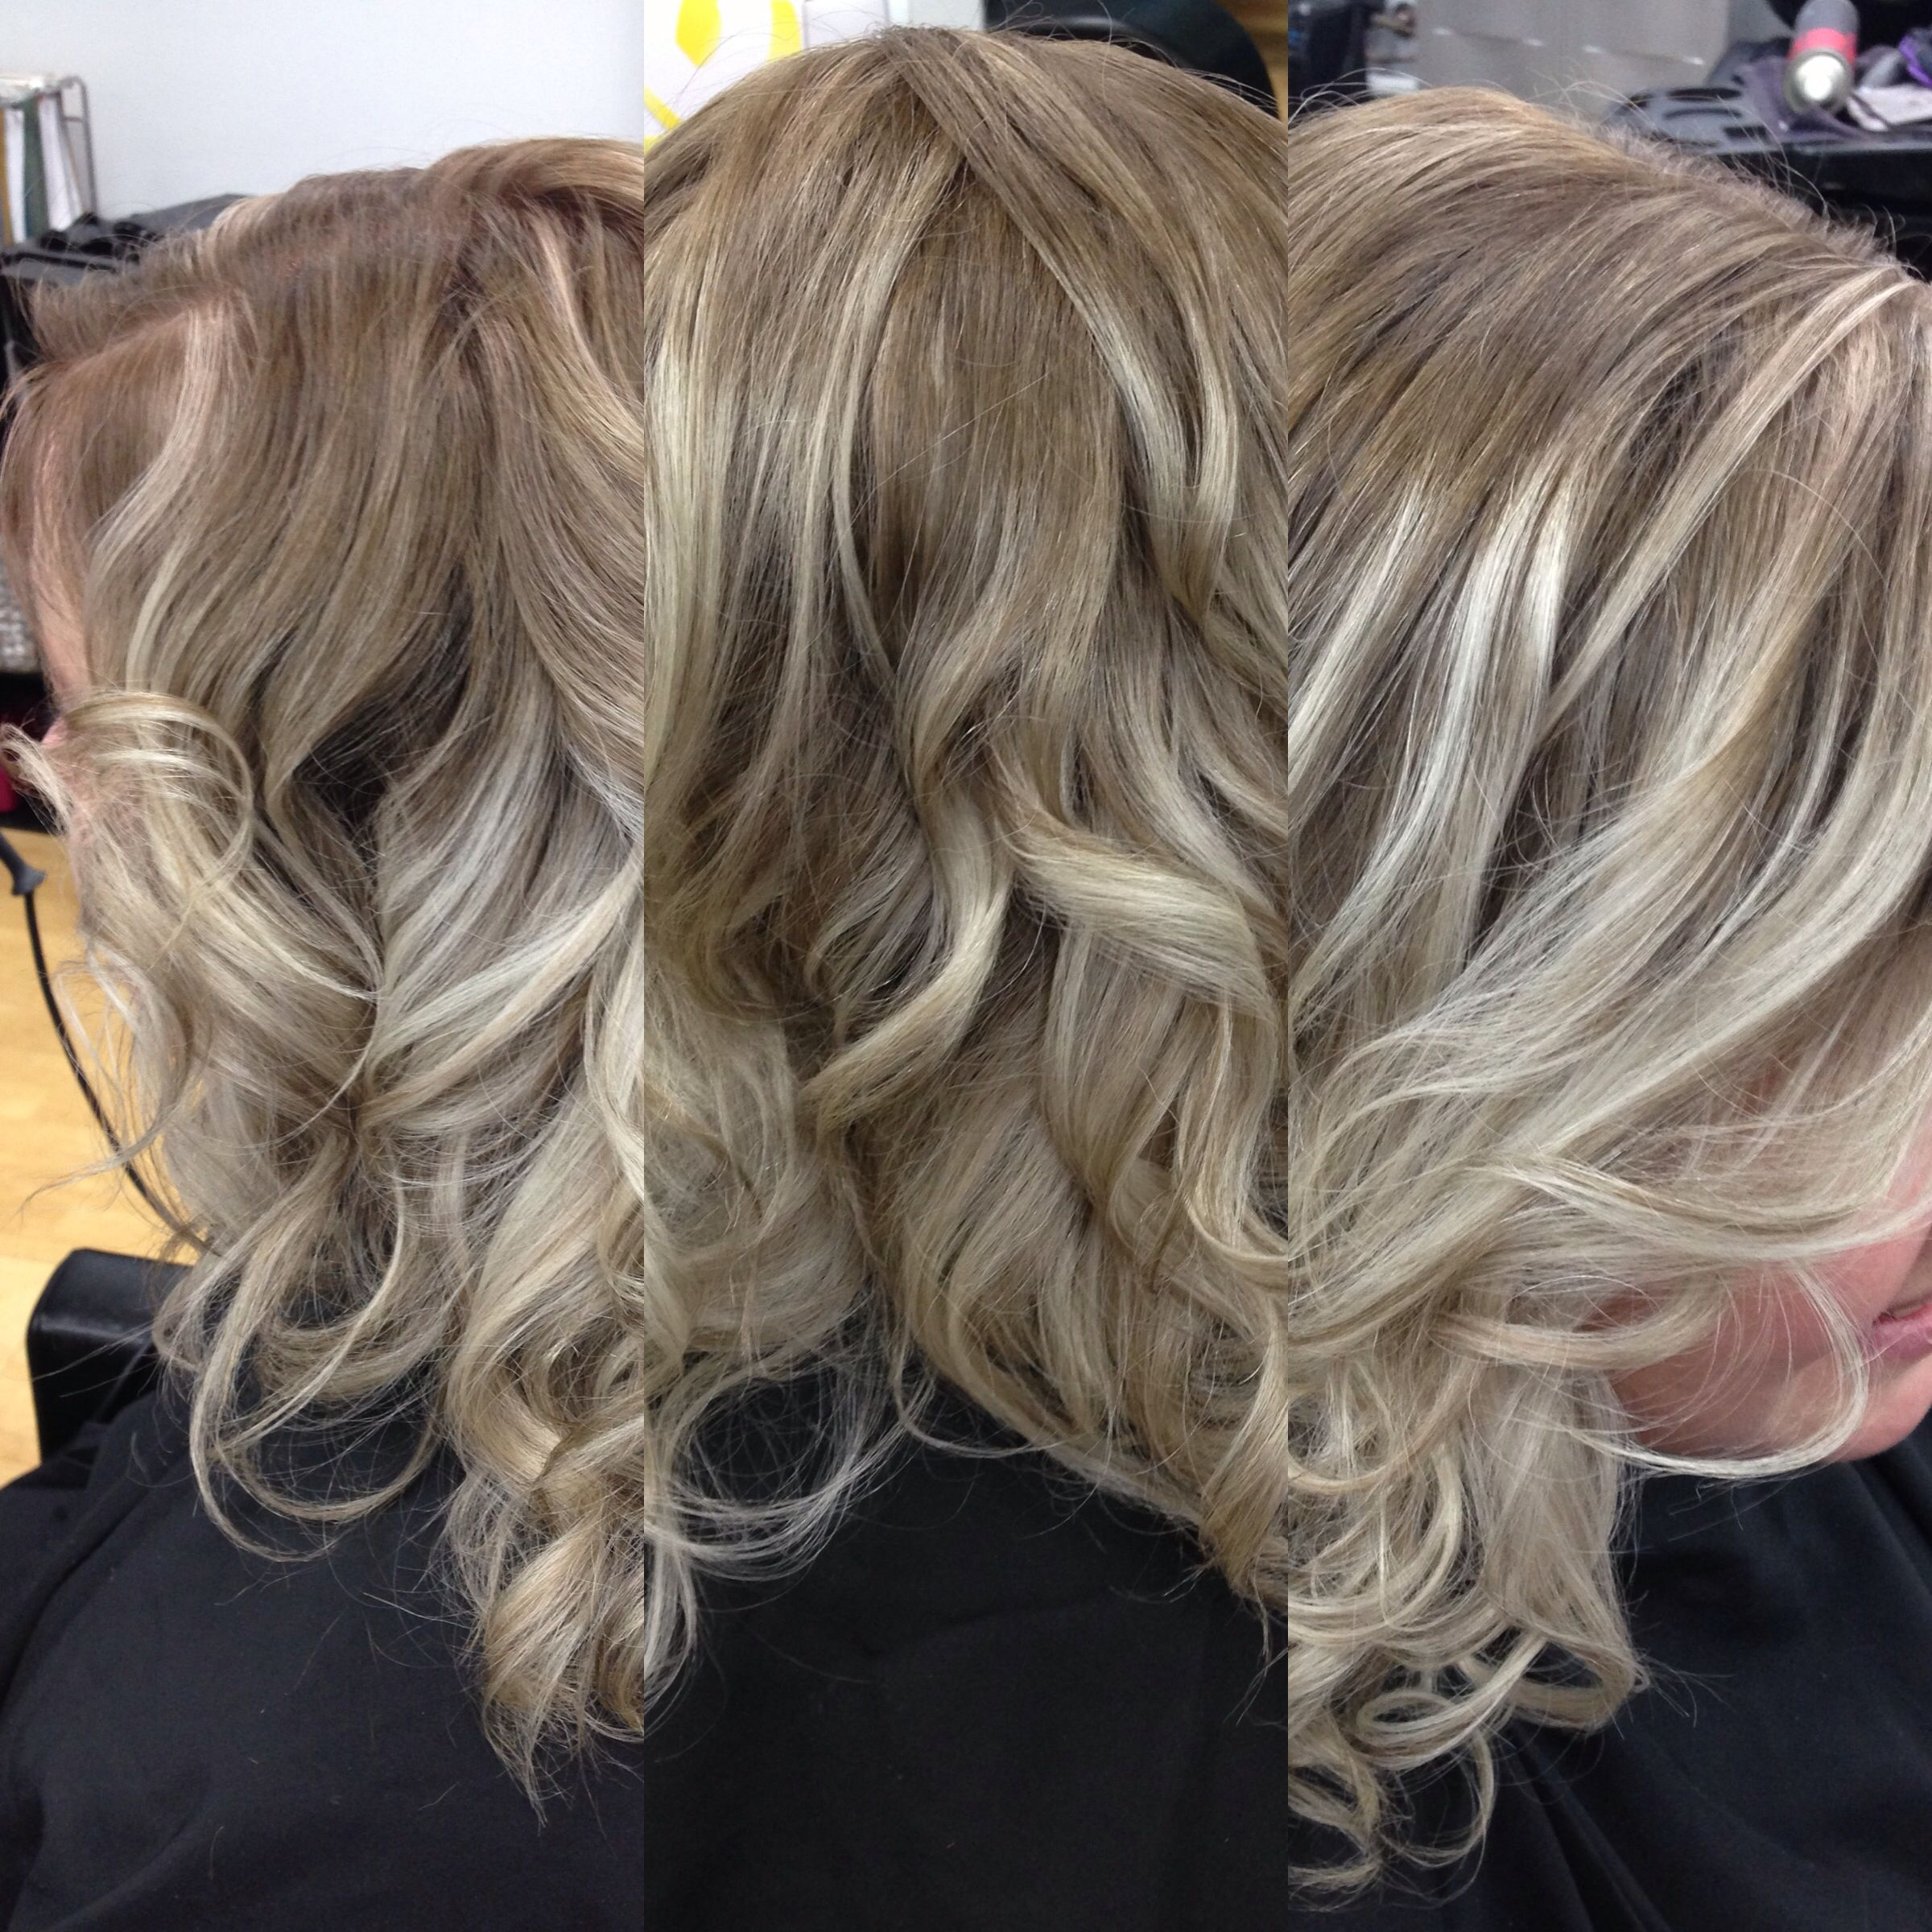 Goldwell Color Went From Platinum Blonde To Balayage Color